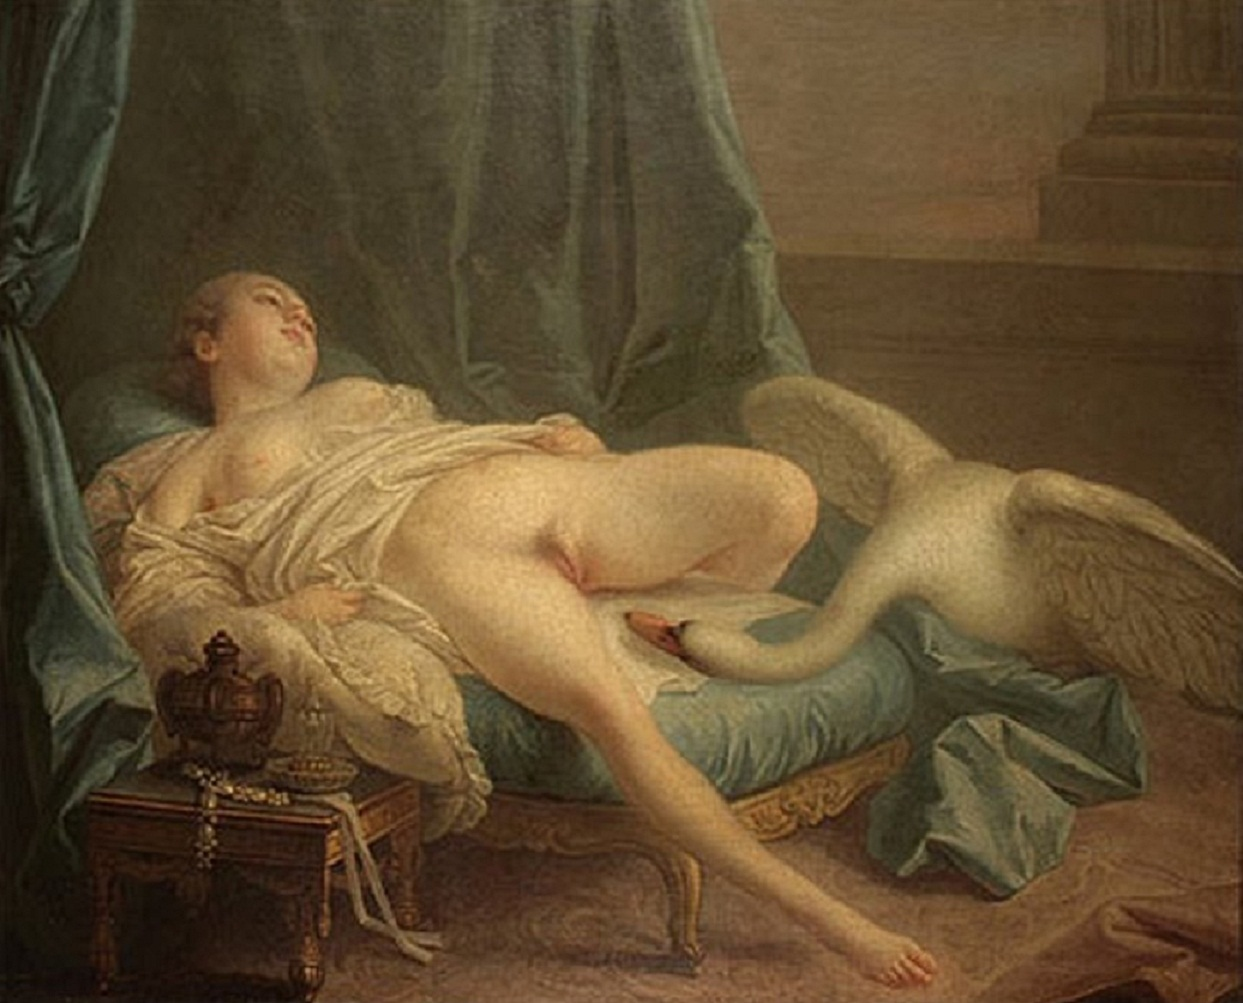 Seems Boucher nude on sofa share your